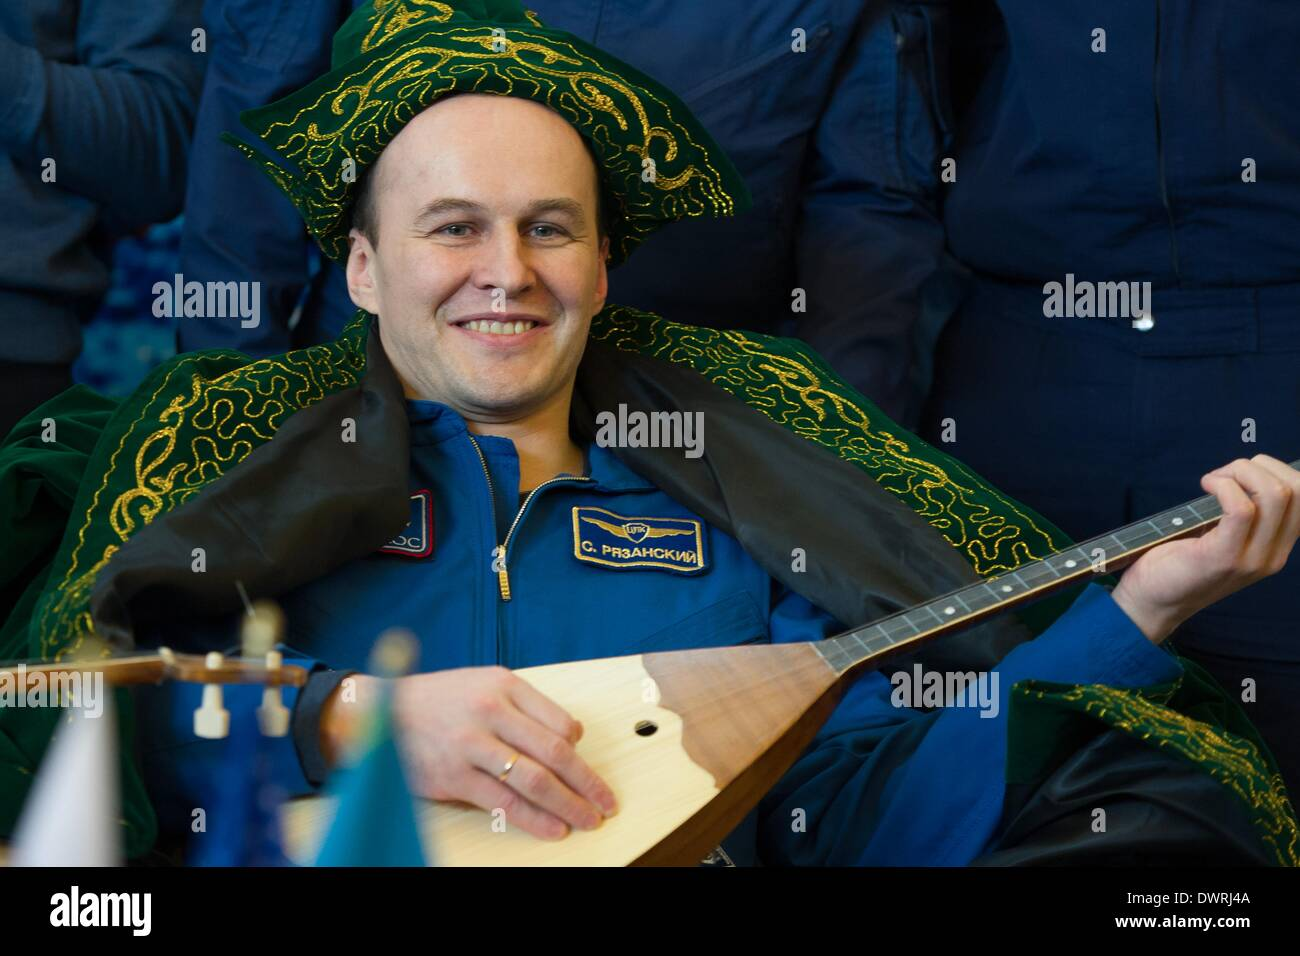 Karaganda airport, Kazakhstan. 11th March, 2014. International Space State Expedition 38 Sergey Ryazanskiy of the Russian Federal Space Agency smiles with his gifts of traditional Kazakh clothing and a matryoshka doll during a welcoming ceremony after landing in a Soyuz TMA-10M spacecraft March 11, 2014 held at the Karaganda airport, Kazakhstan. Hopkins, Kotov and Ryazanskiy returned to Earth after five and a half months onboard the International Space Station. Credit:  Planetpix/Alamy Live News - Stock Image